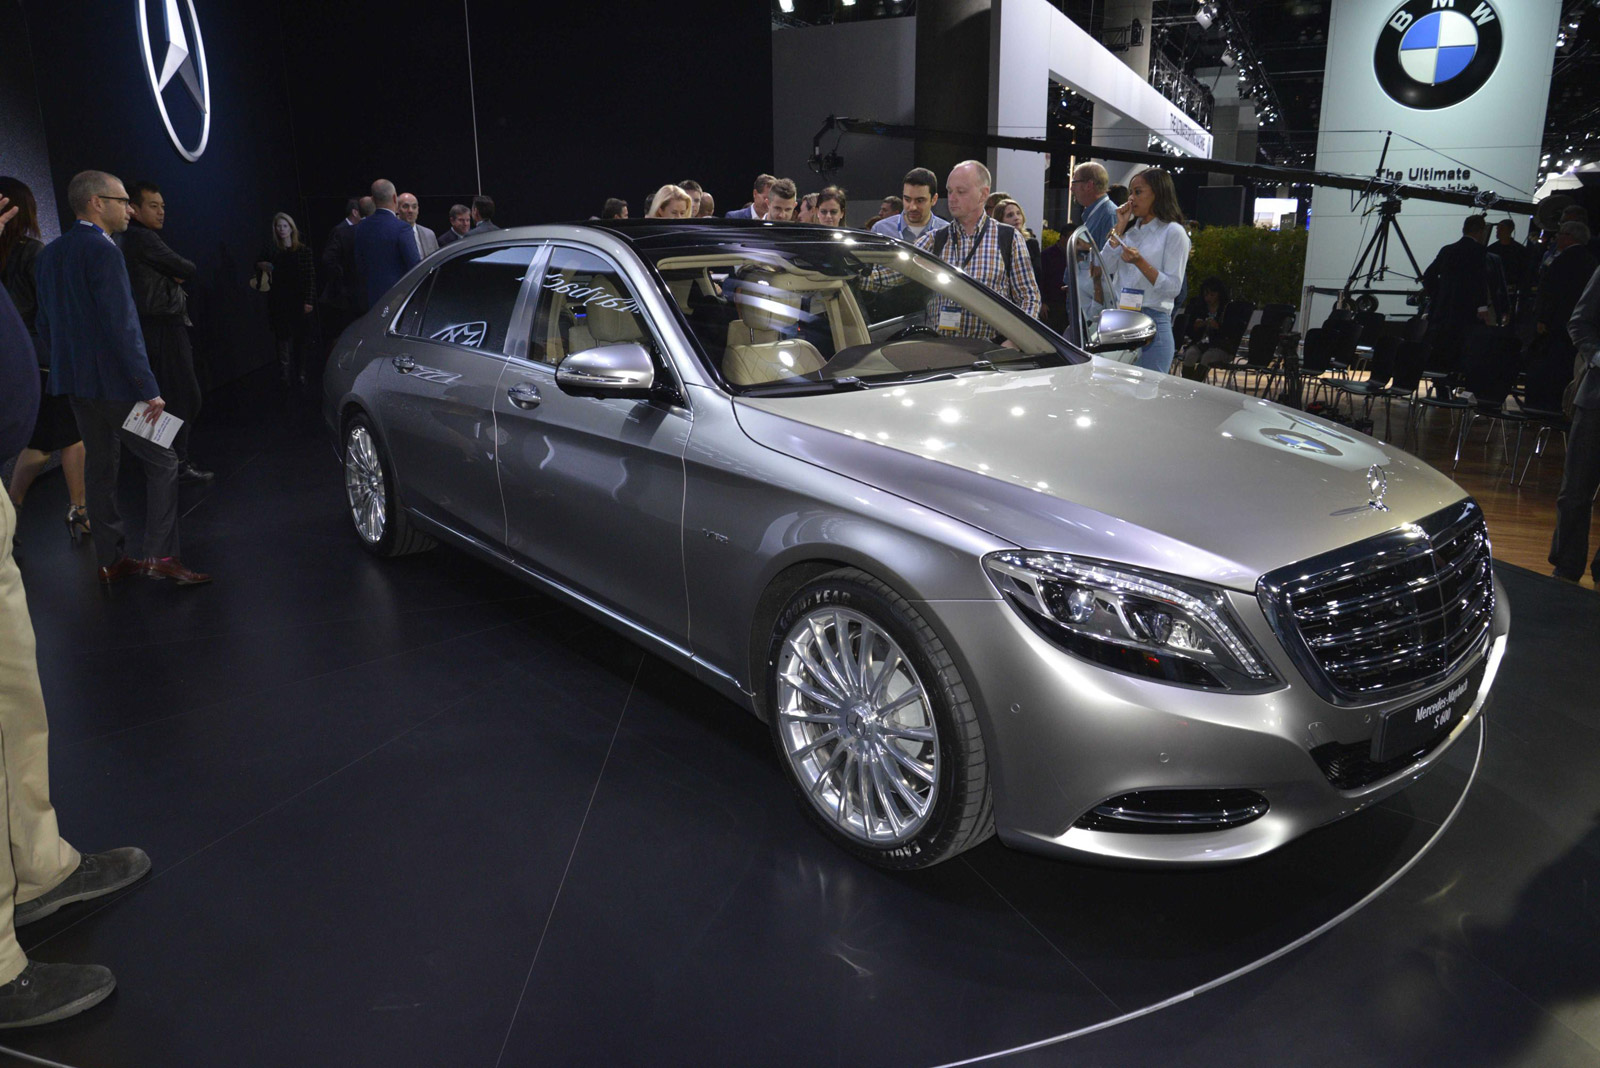 2016 mercedes maybach s class debuts at 2014 los angeles auto show. Black Bedroom Furniture Sets. Home Design Ideas